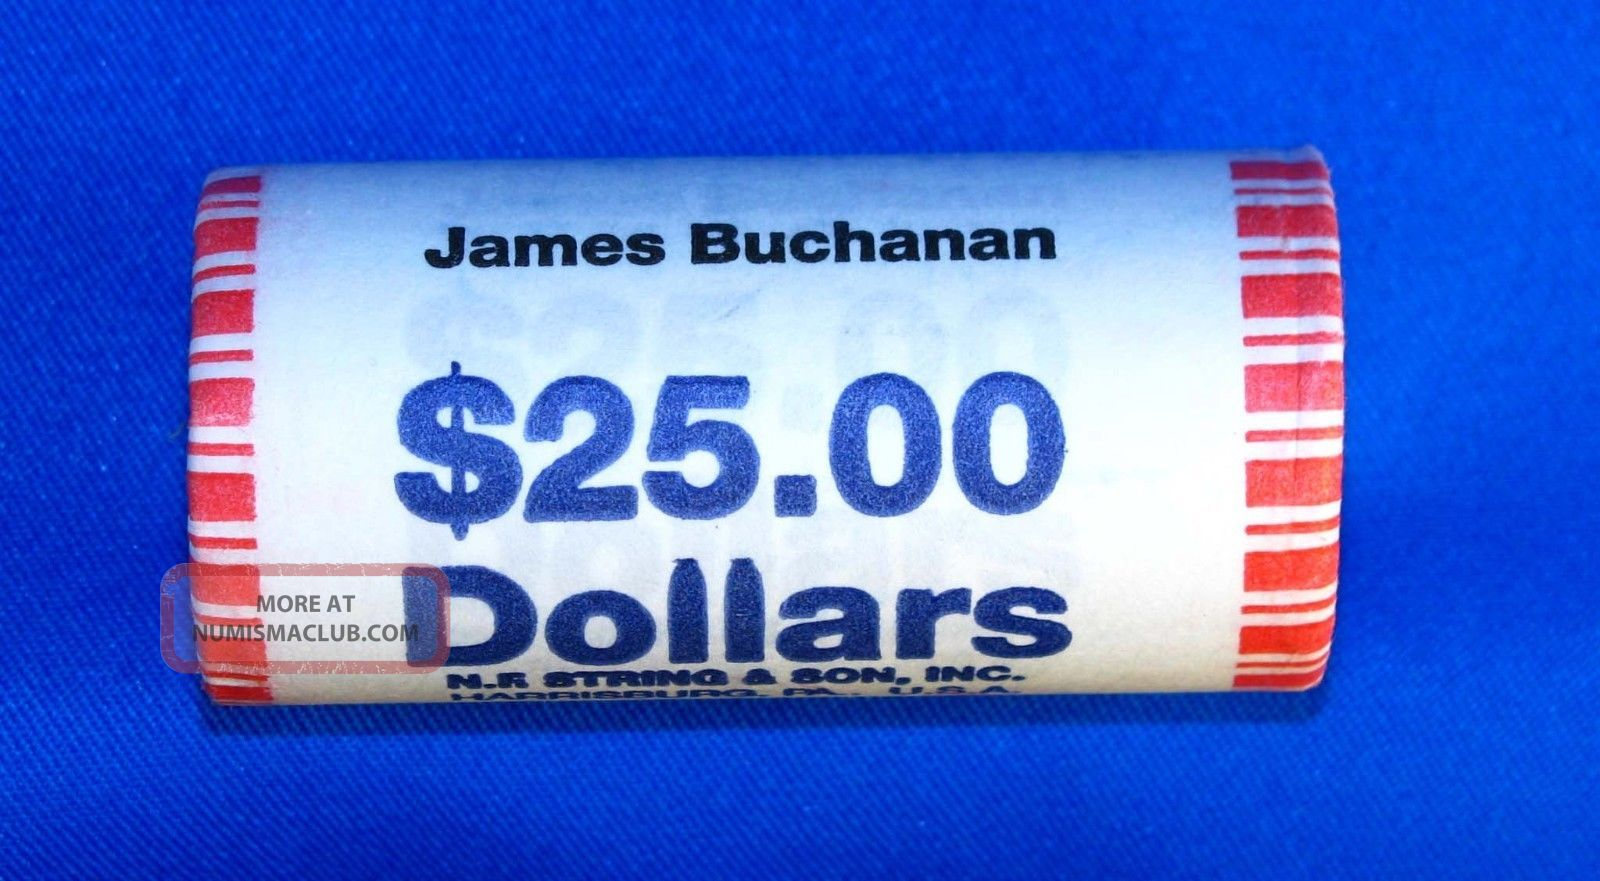 2010 James Buchanan Presidential Dollars - 25 Coin Wrapped Ro Dollars photo